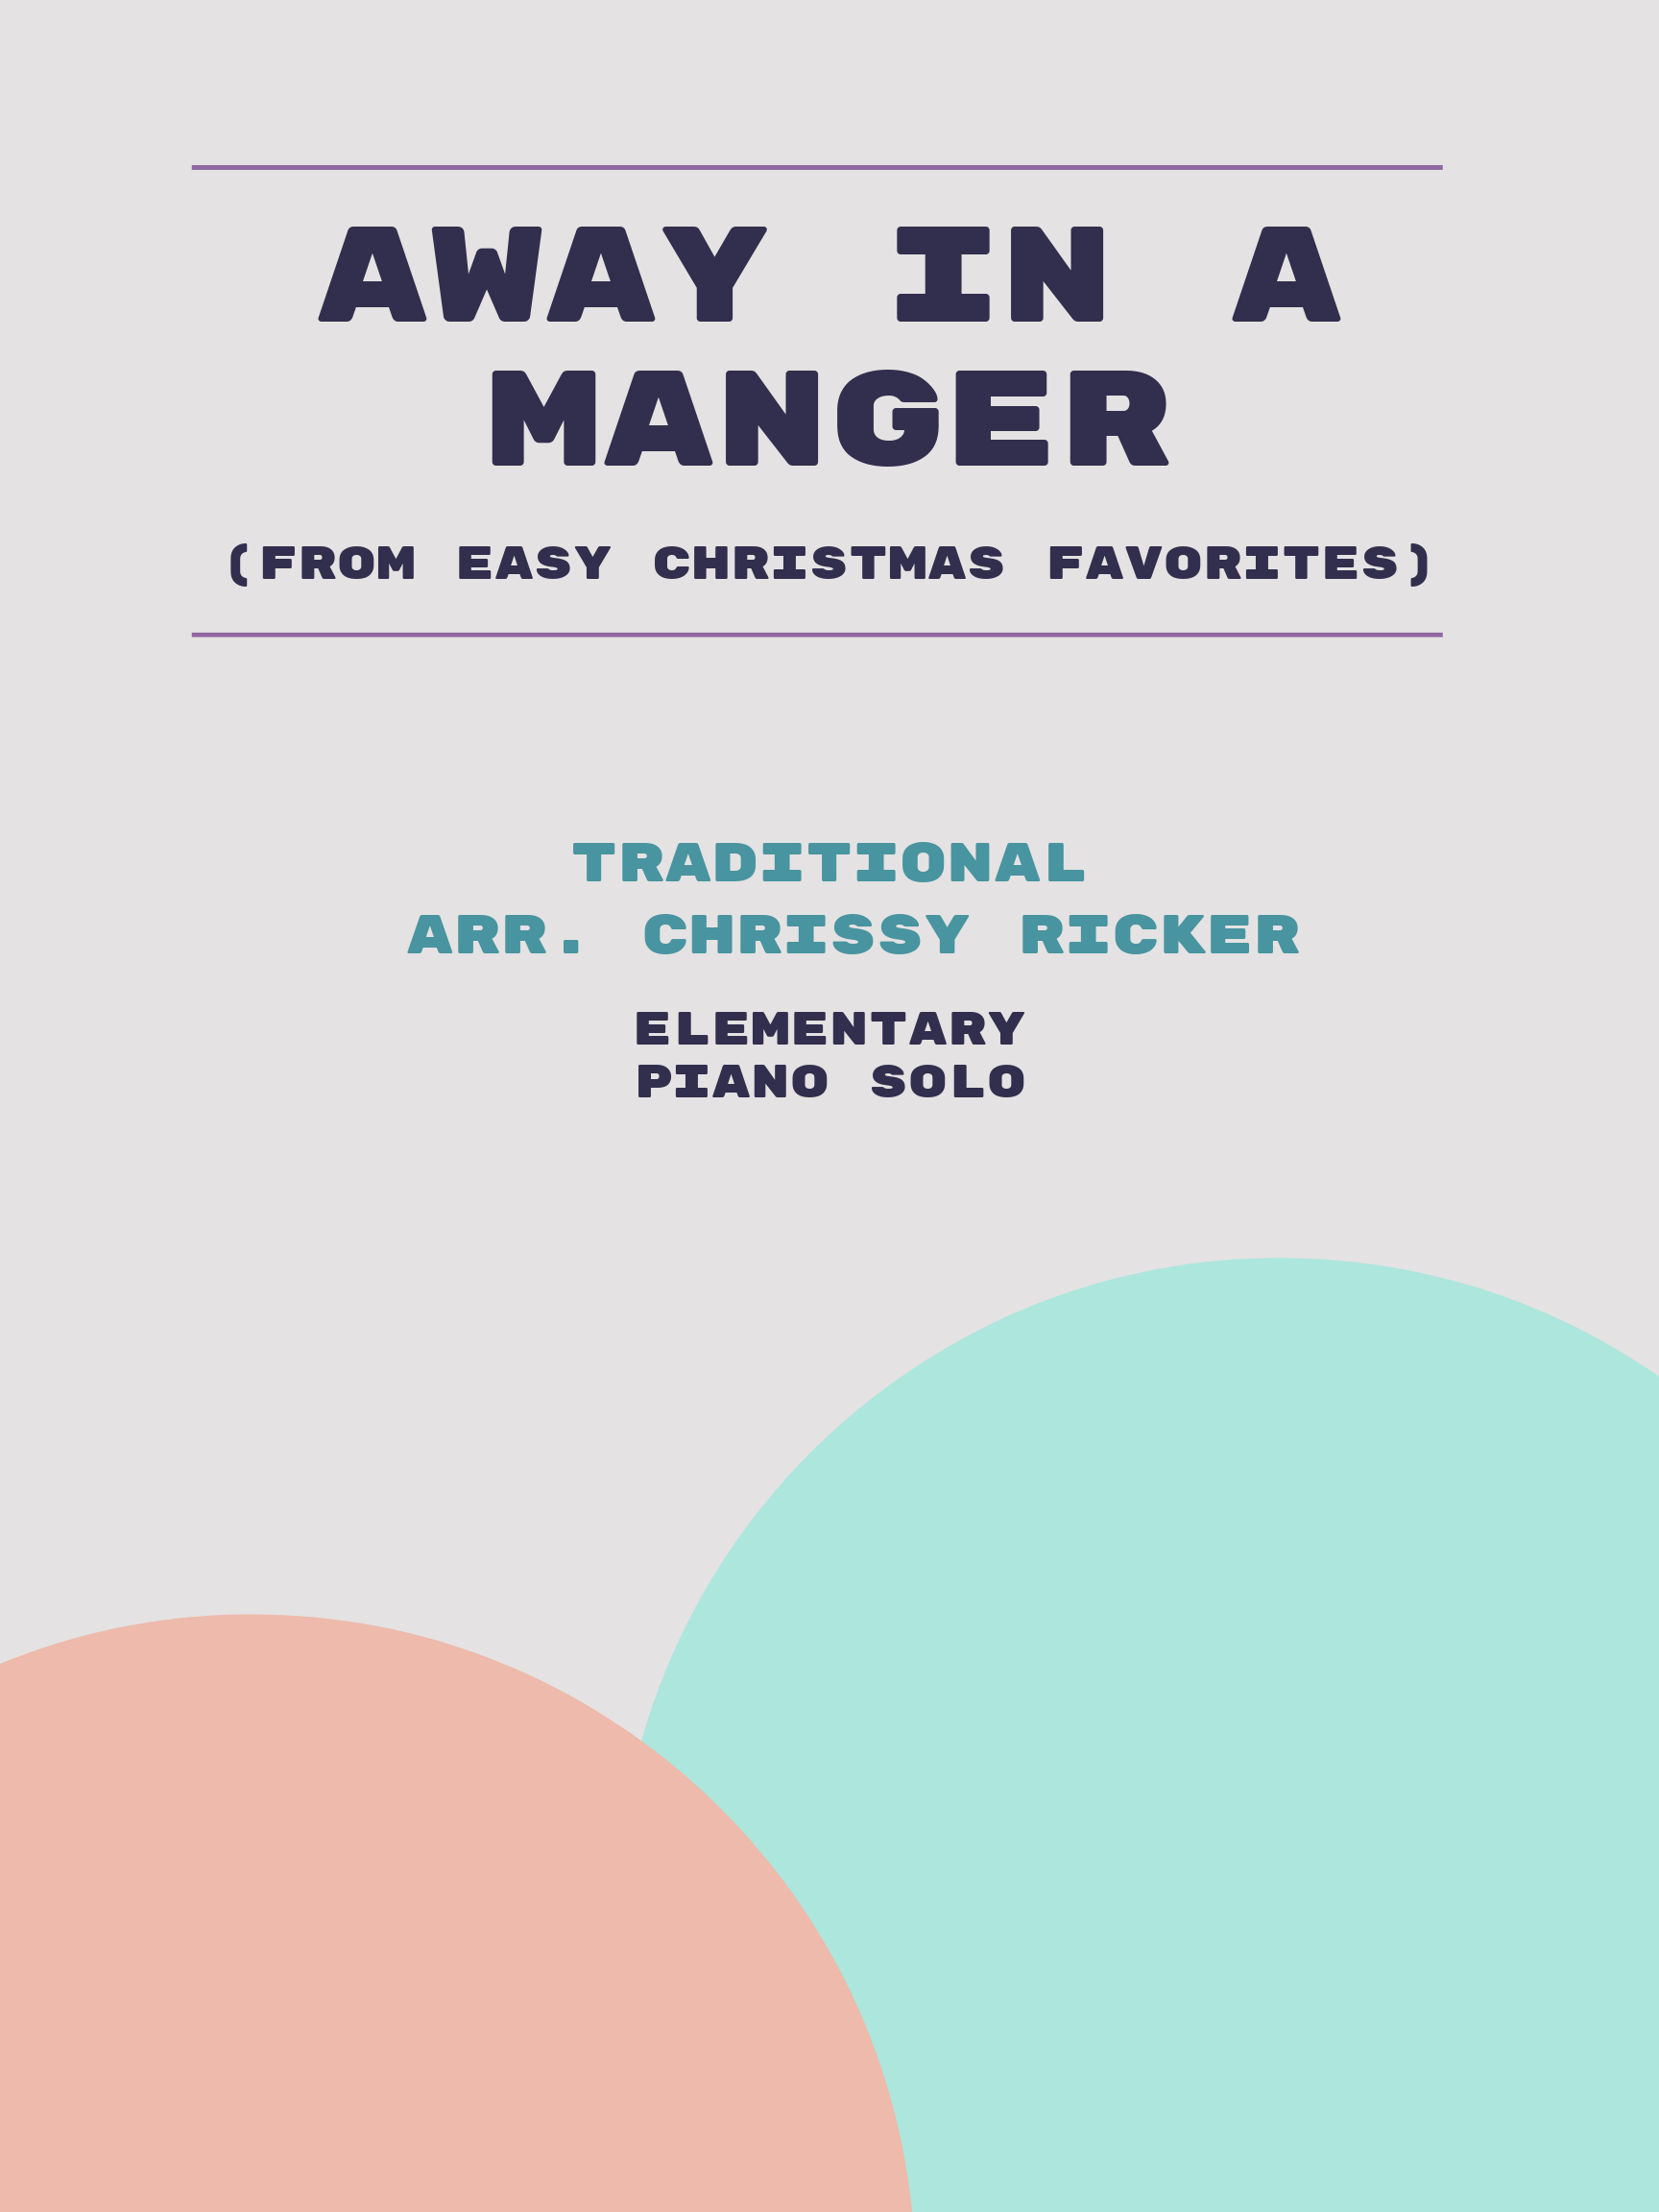 Away in a Manger by Traditional